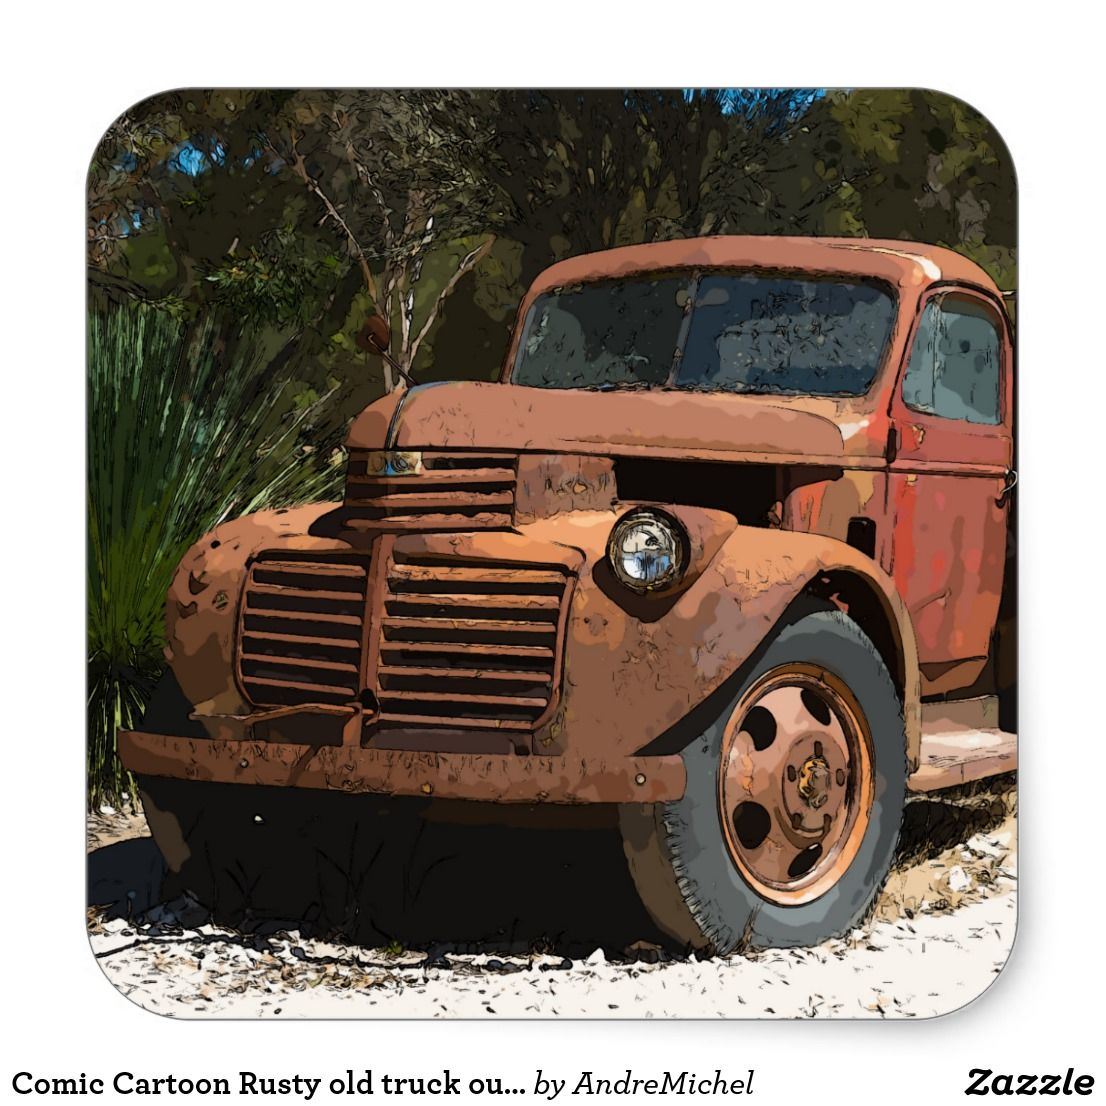 Comic Cartoon Rusty old truck outback Australia Square